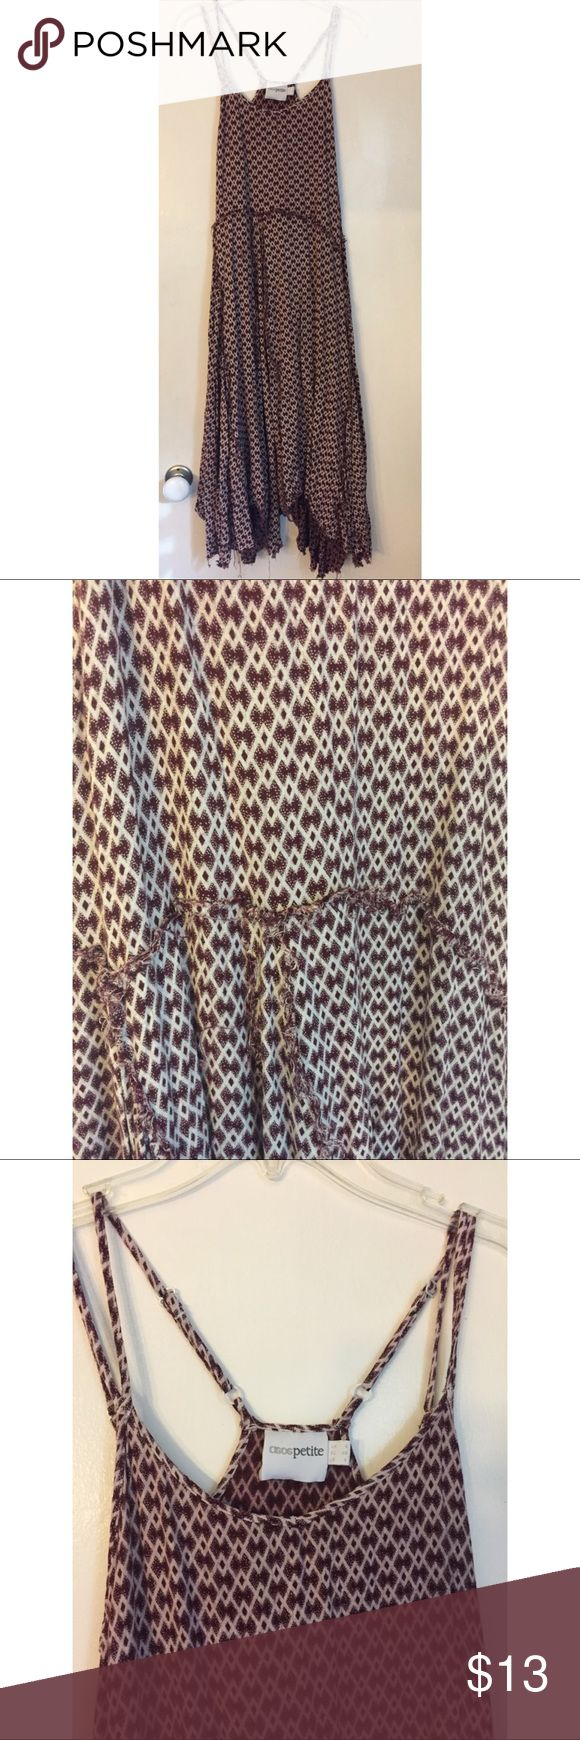 ASOS Petite Patterned Maxi Dress White and maroon patterned design all over the dress; boho style; fringe-y bottoms; spaghetti straps; soft; comfortable; Size: UK 8, EU 36, US 4; clean; no damage ASOS Petite Dresses Maxi